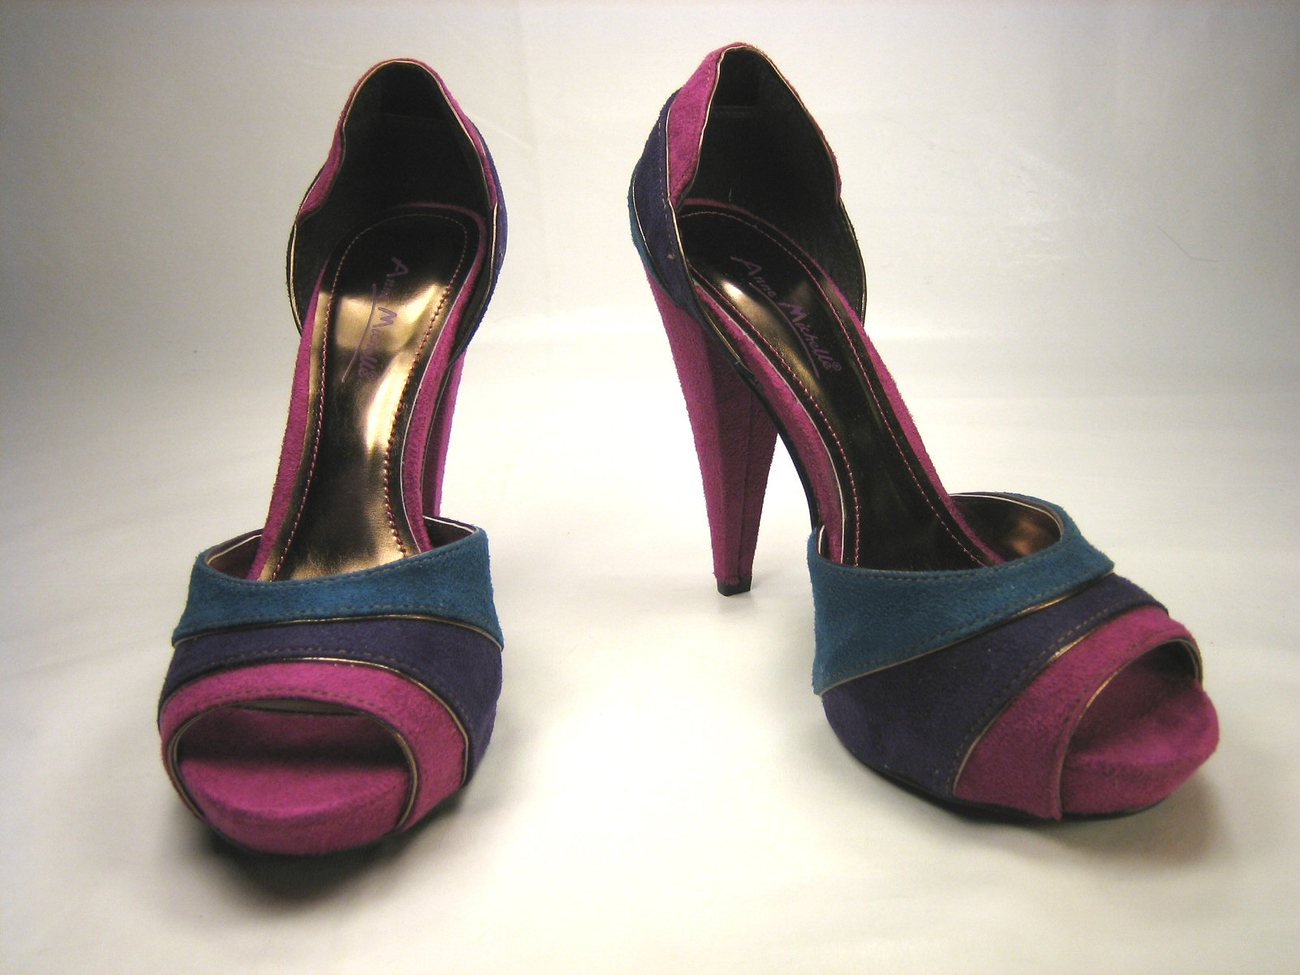 Anne Michelle covered platform open toe d'Orsay pumps 4.5 inch heels multi color